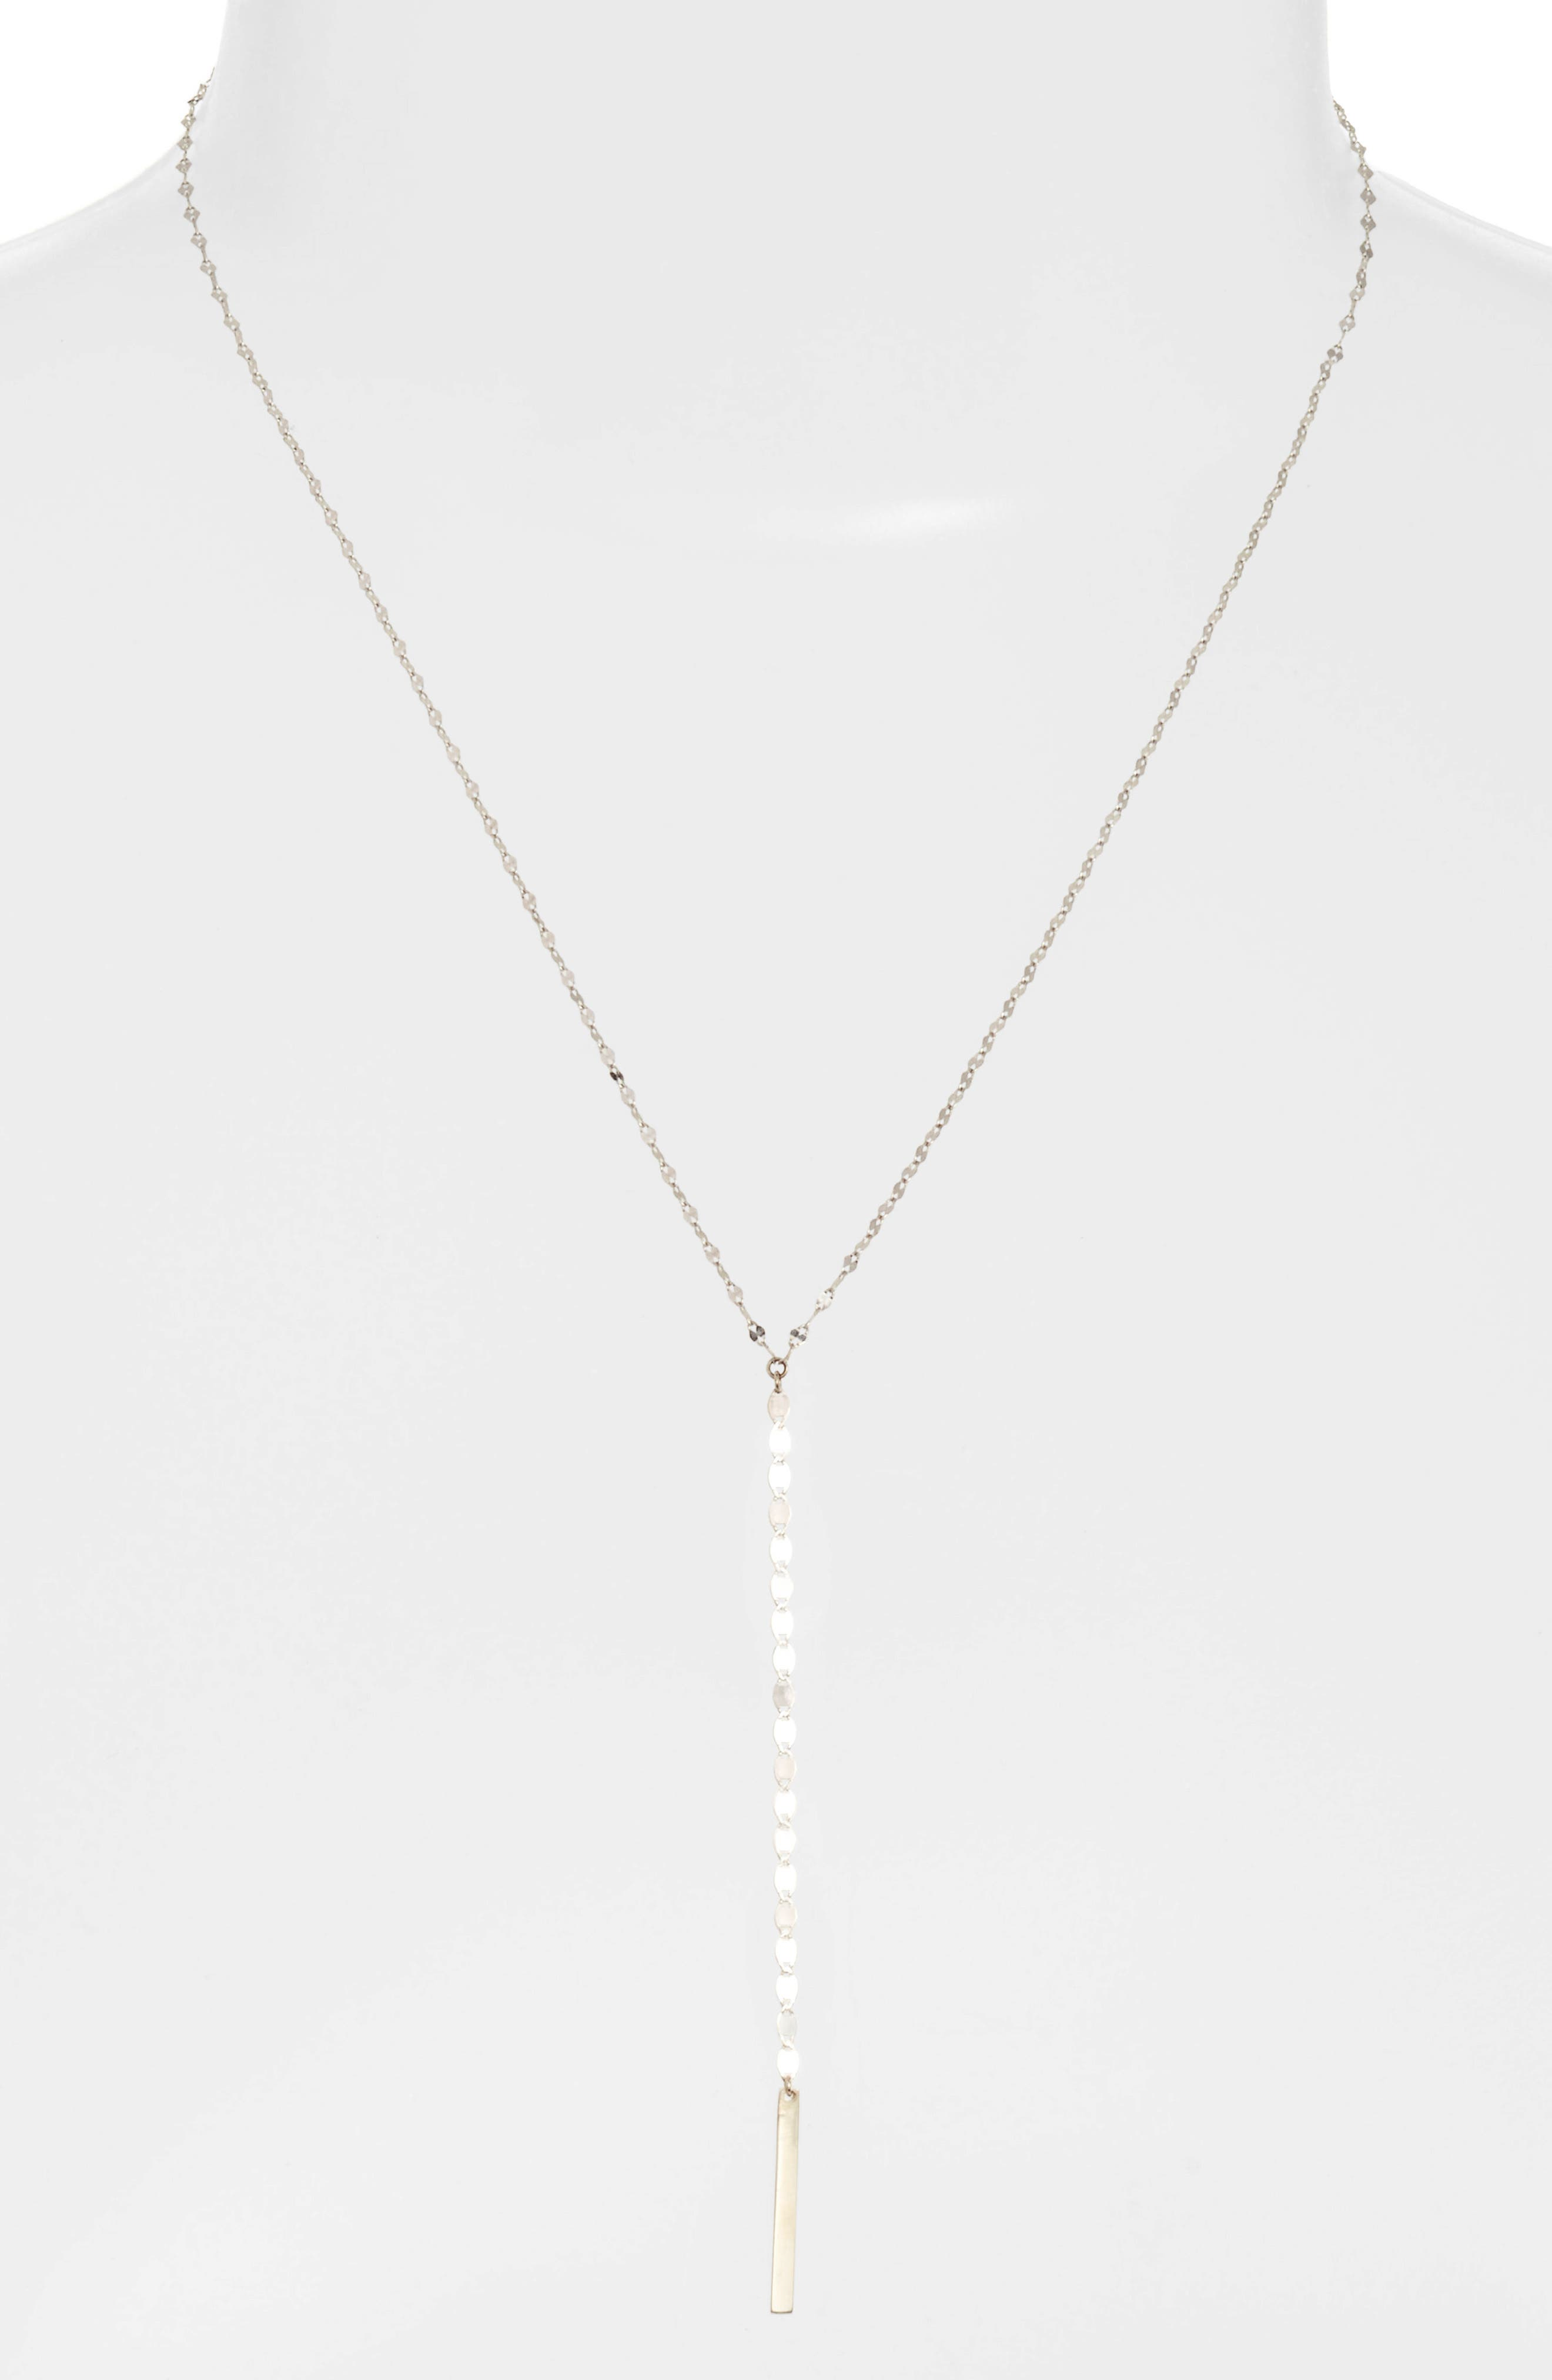 Nude Remix Bar Y-Necklace,                         Main,                         color, White Gold